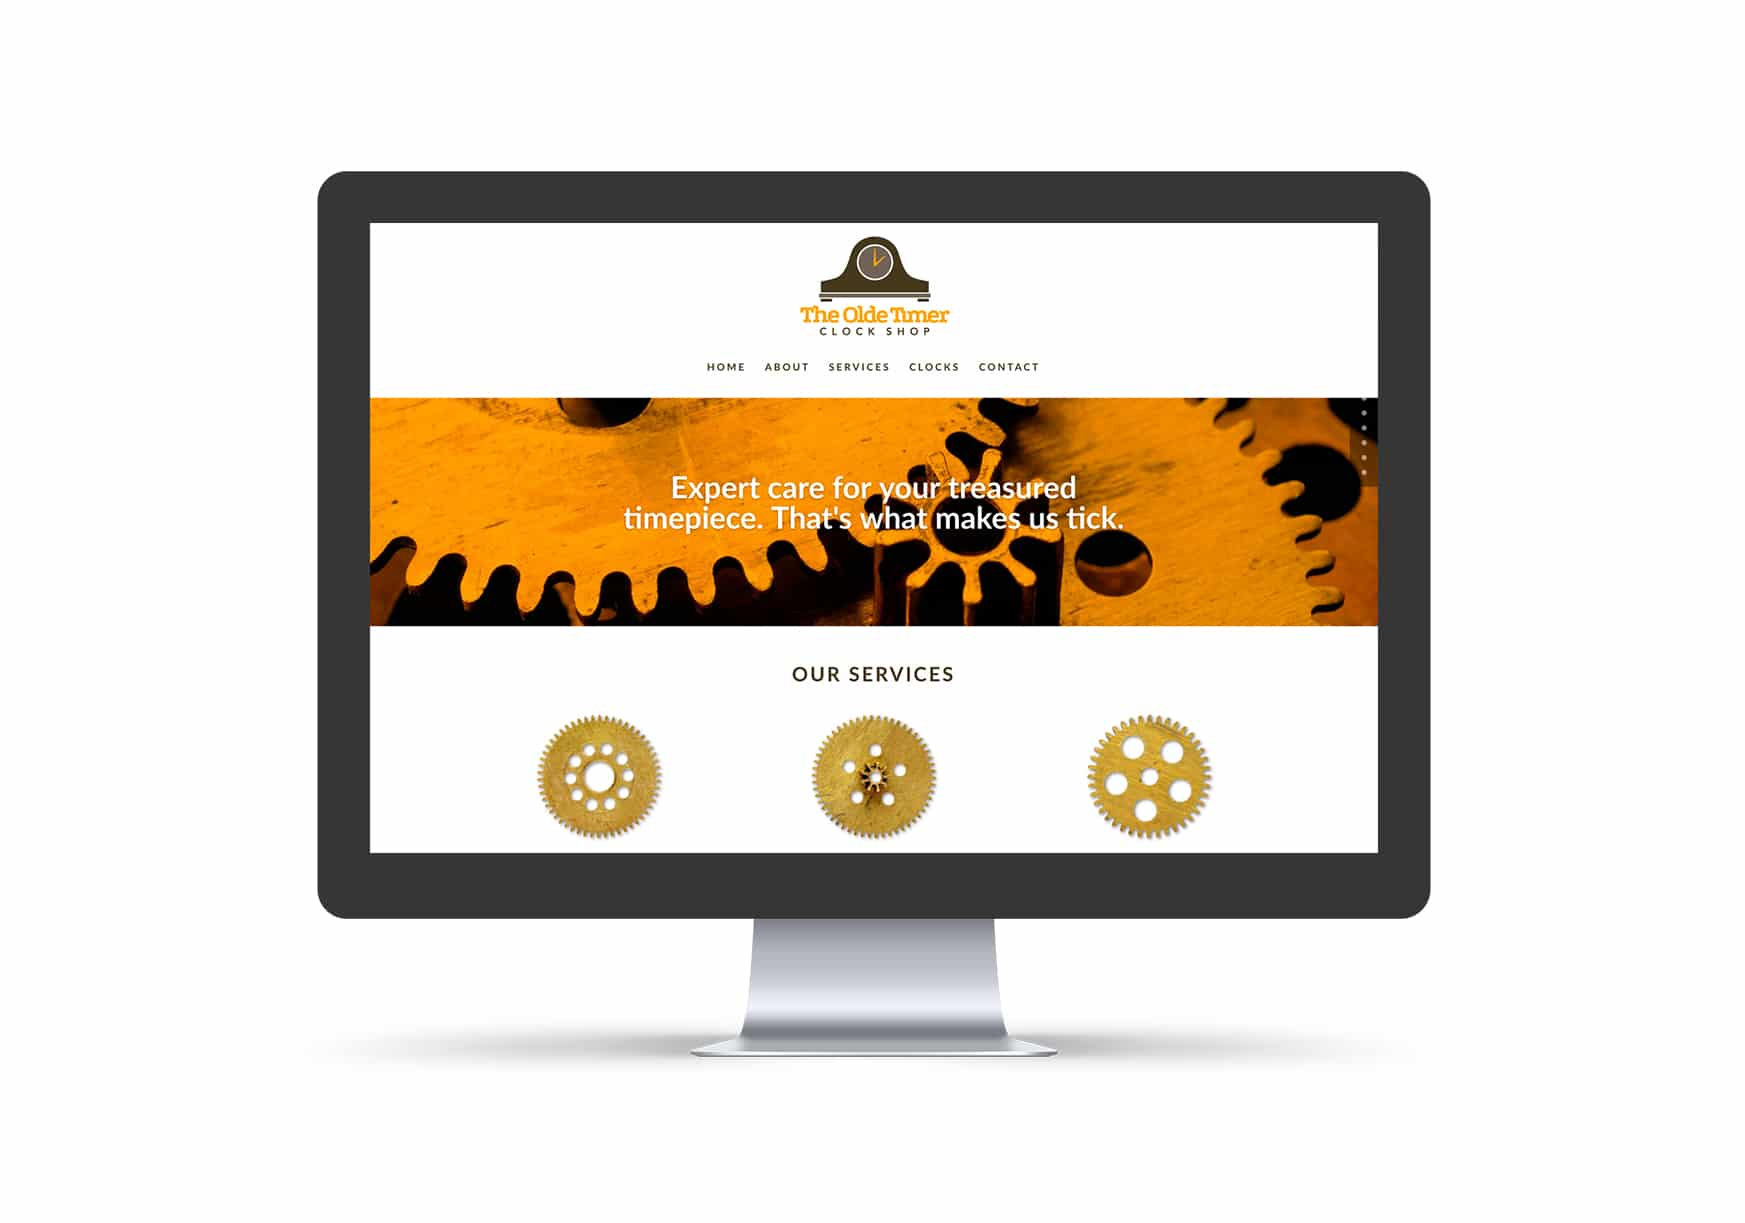 Website Design - Olde Timer Clock Shop